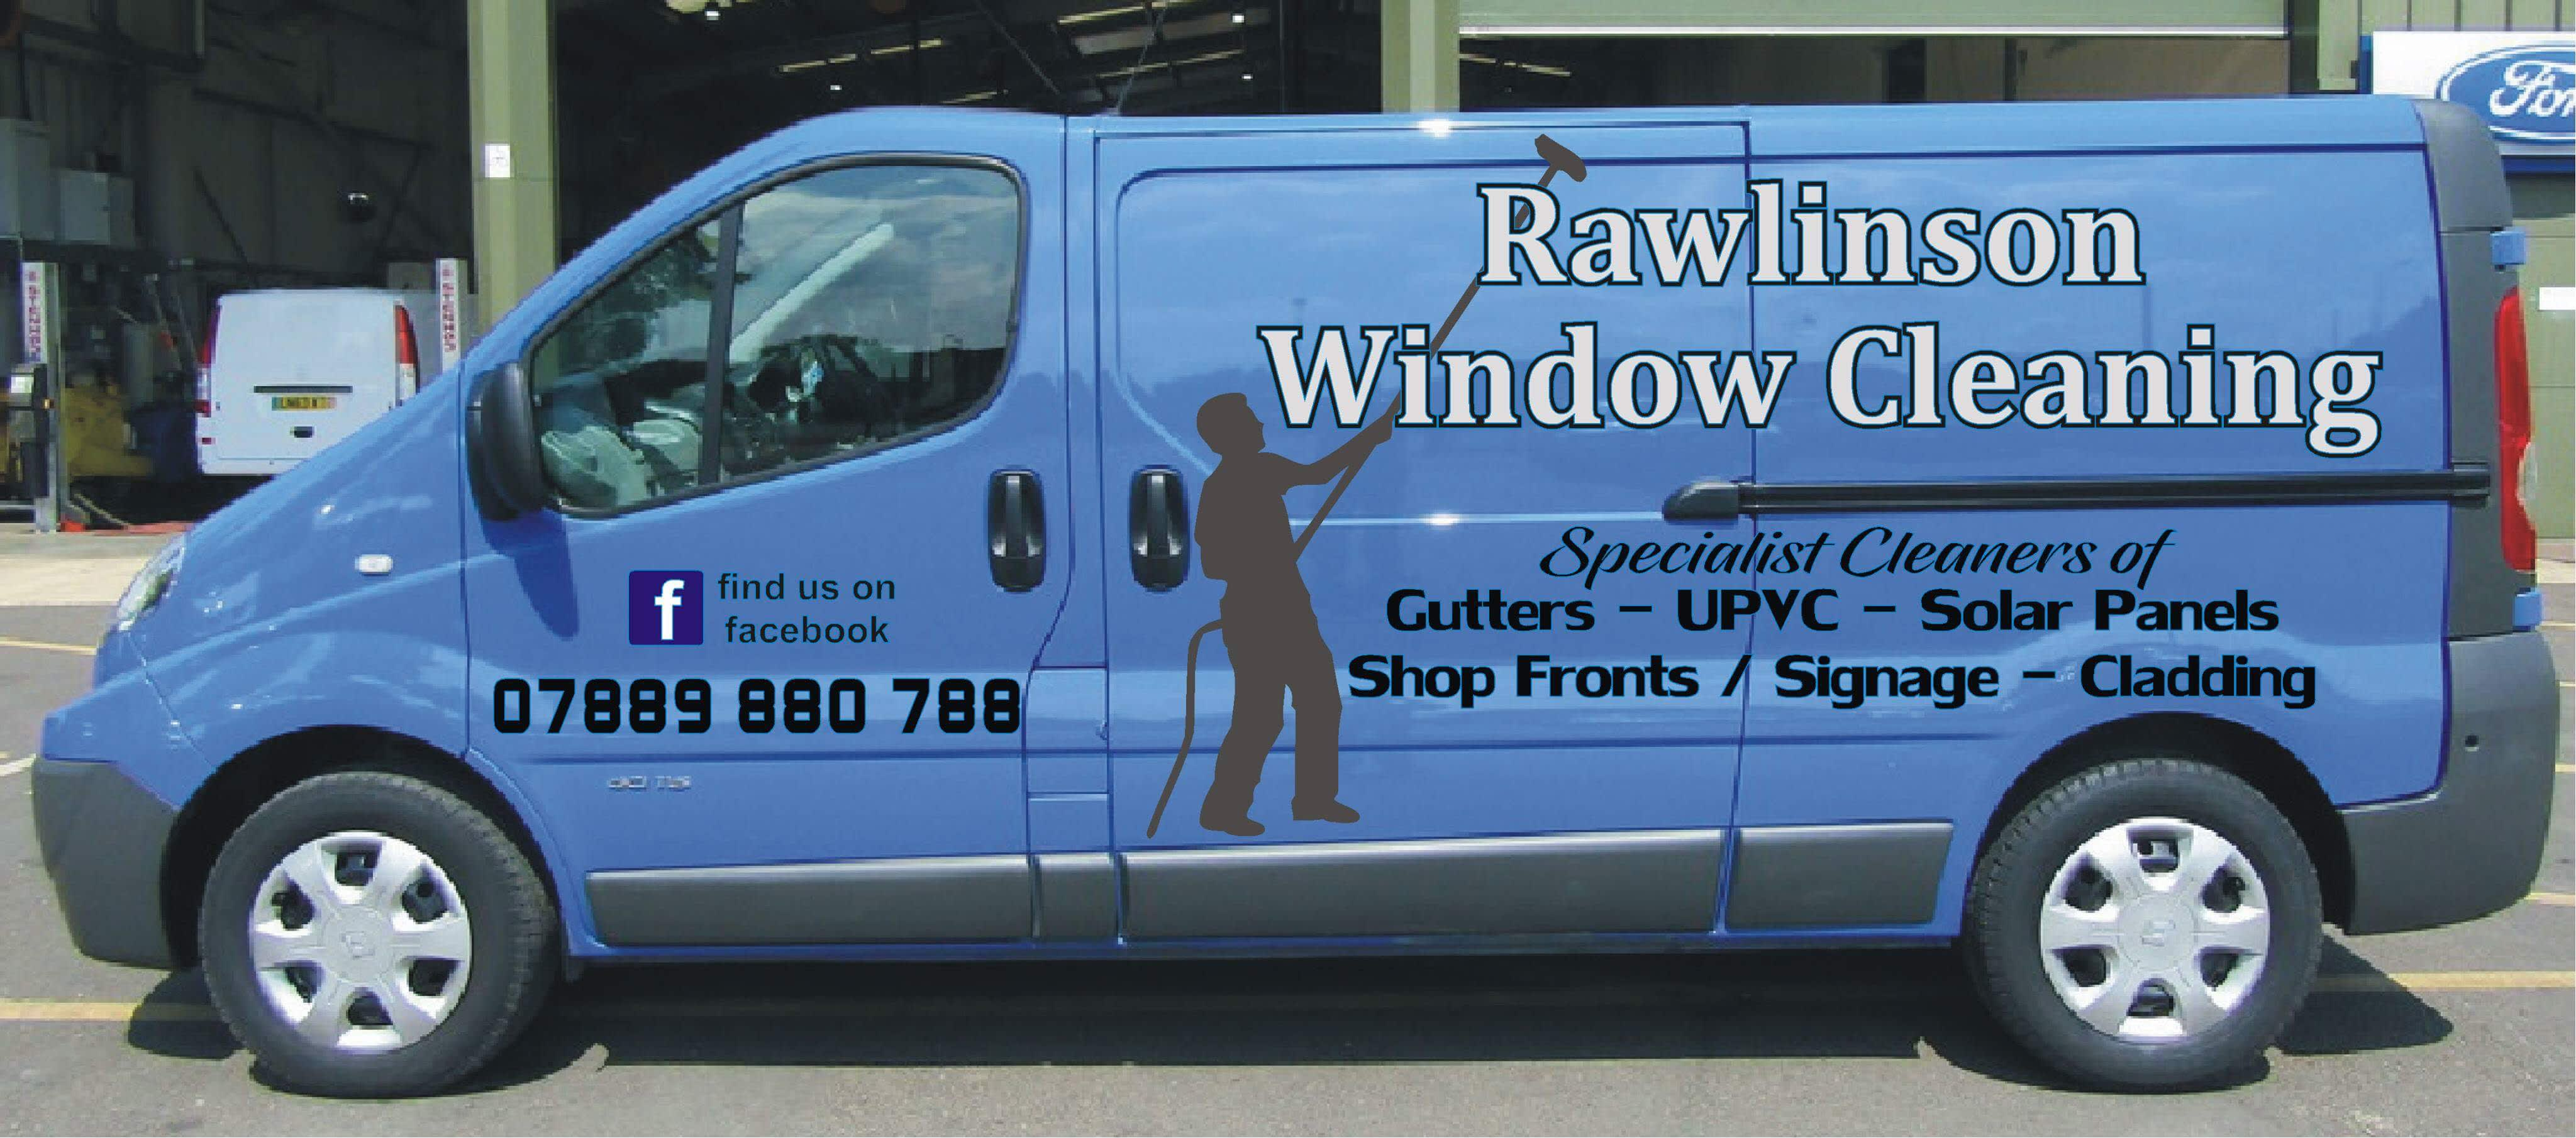 Rawlinson Window Cleaning